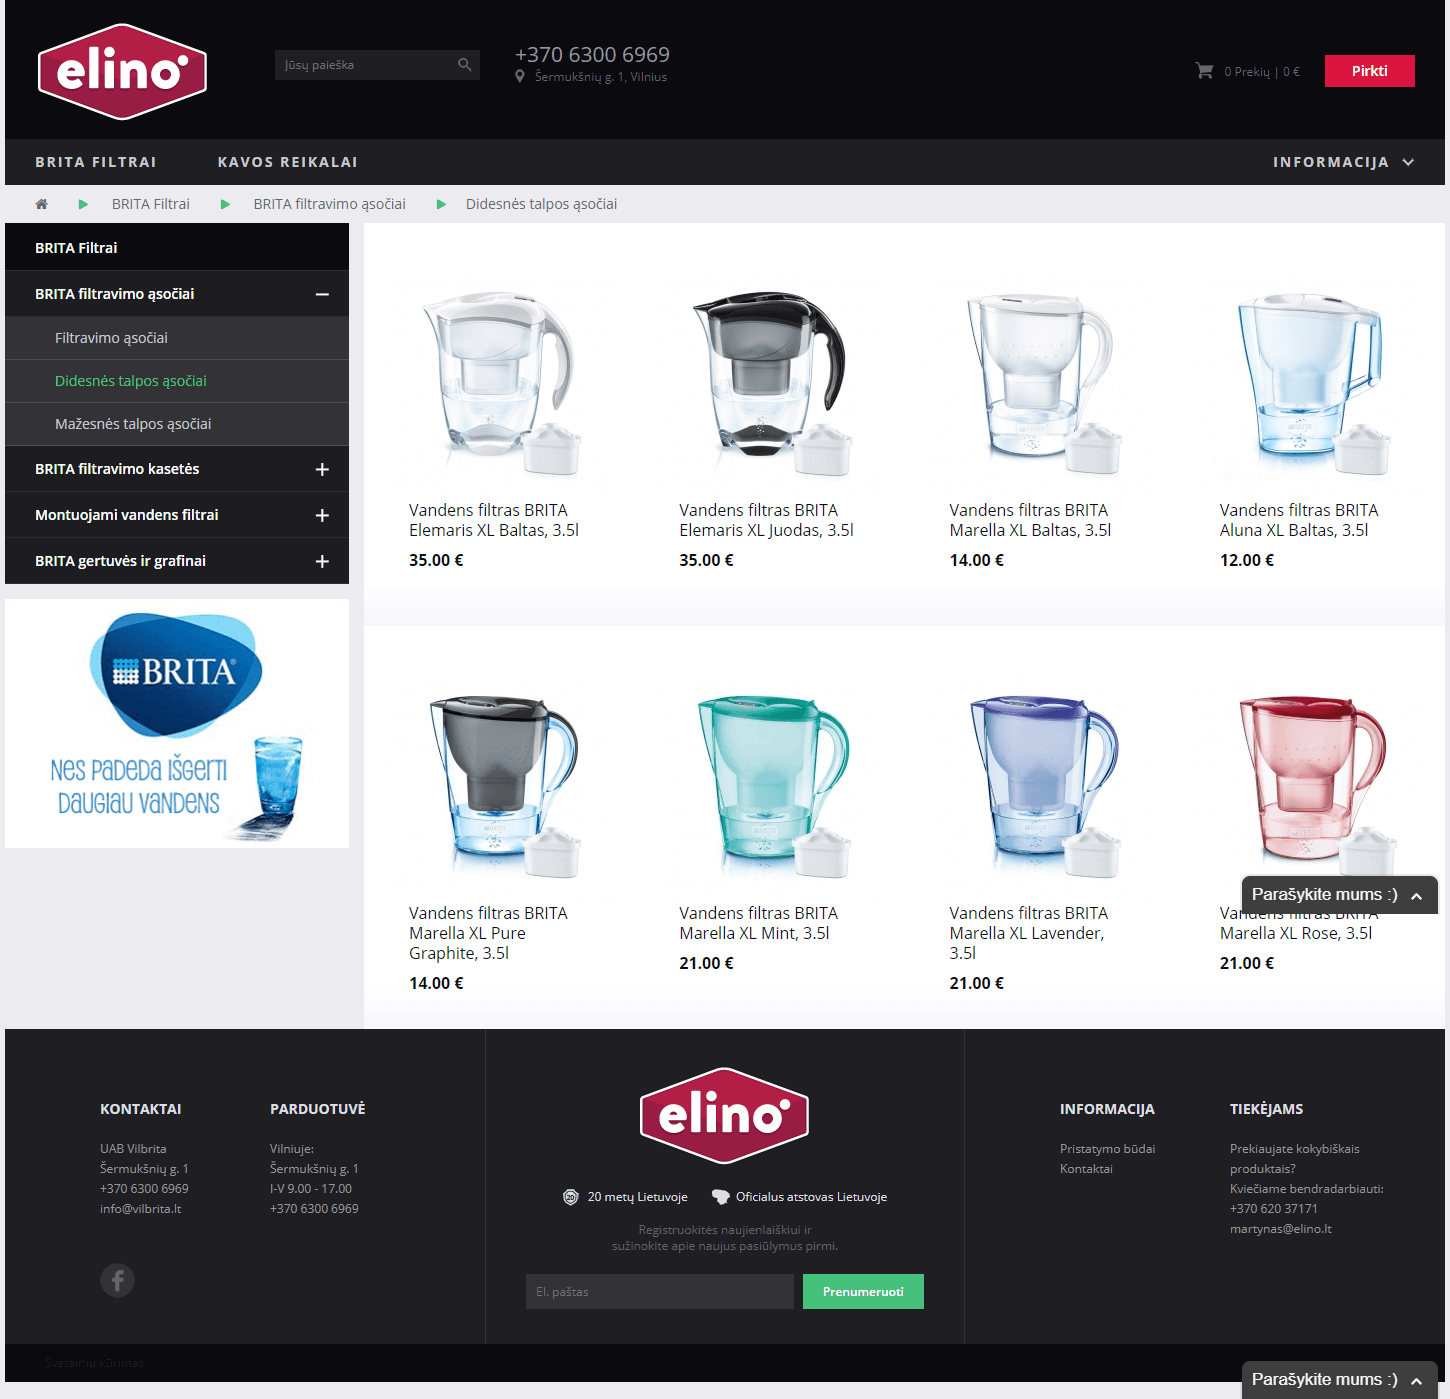 elino.lt product listing page design